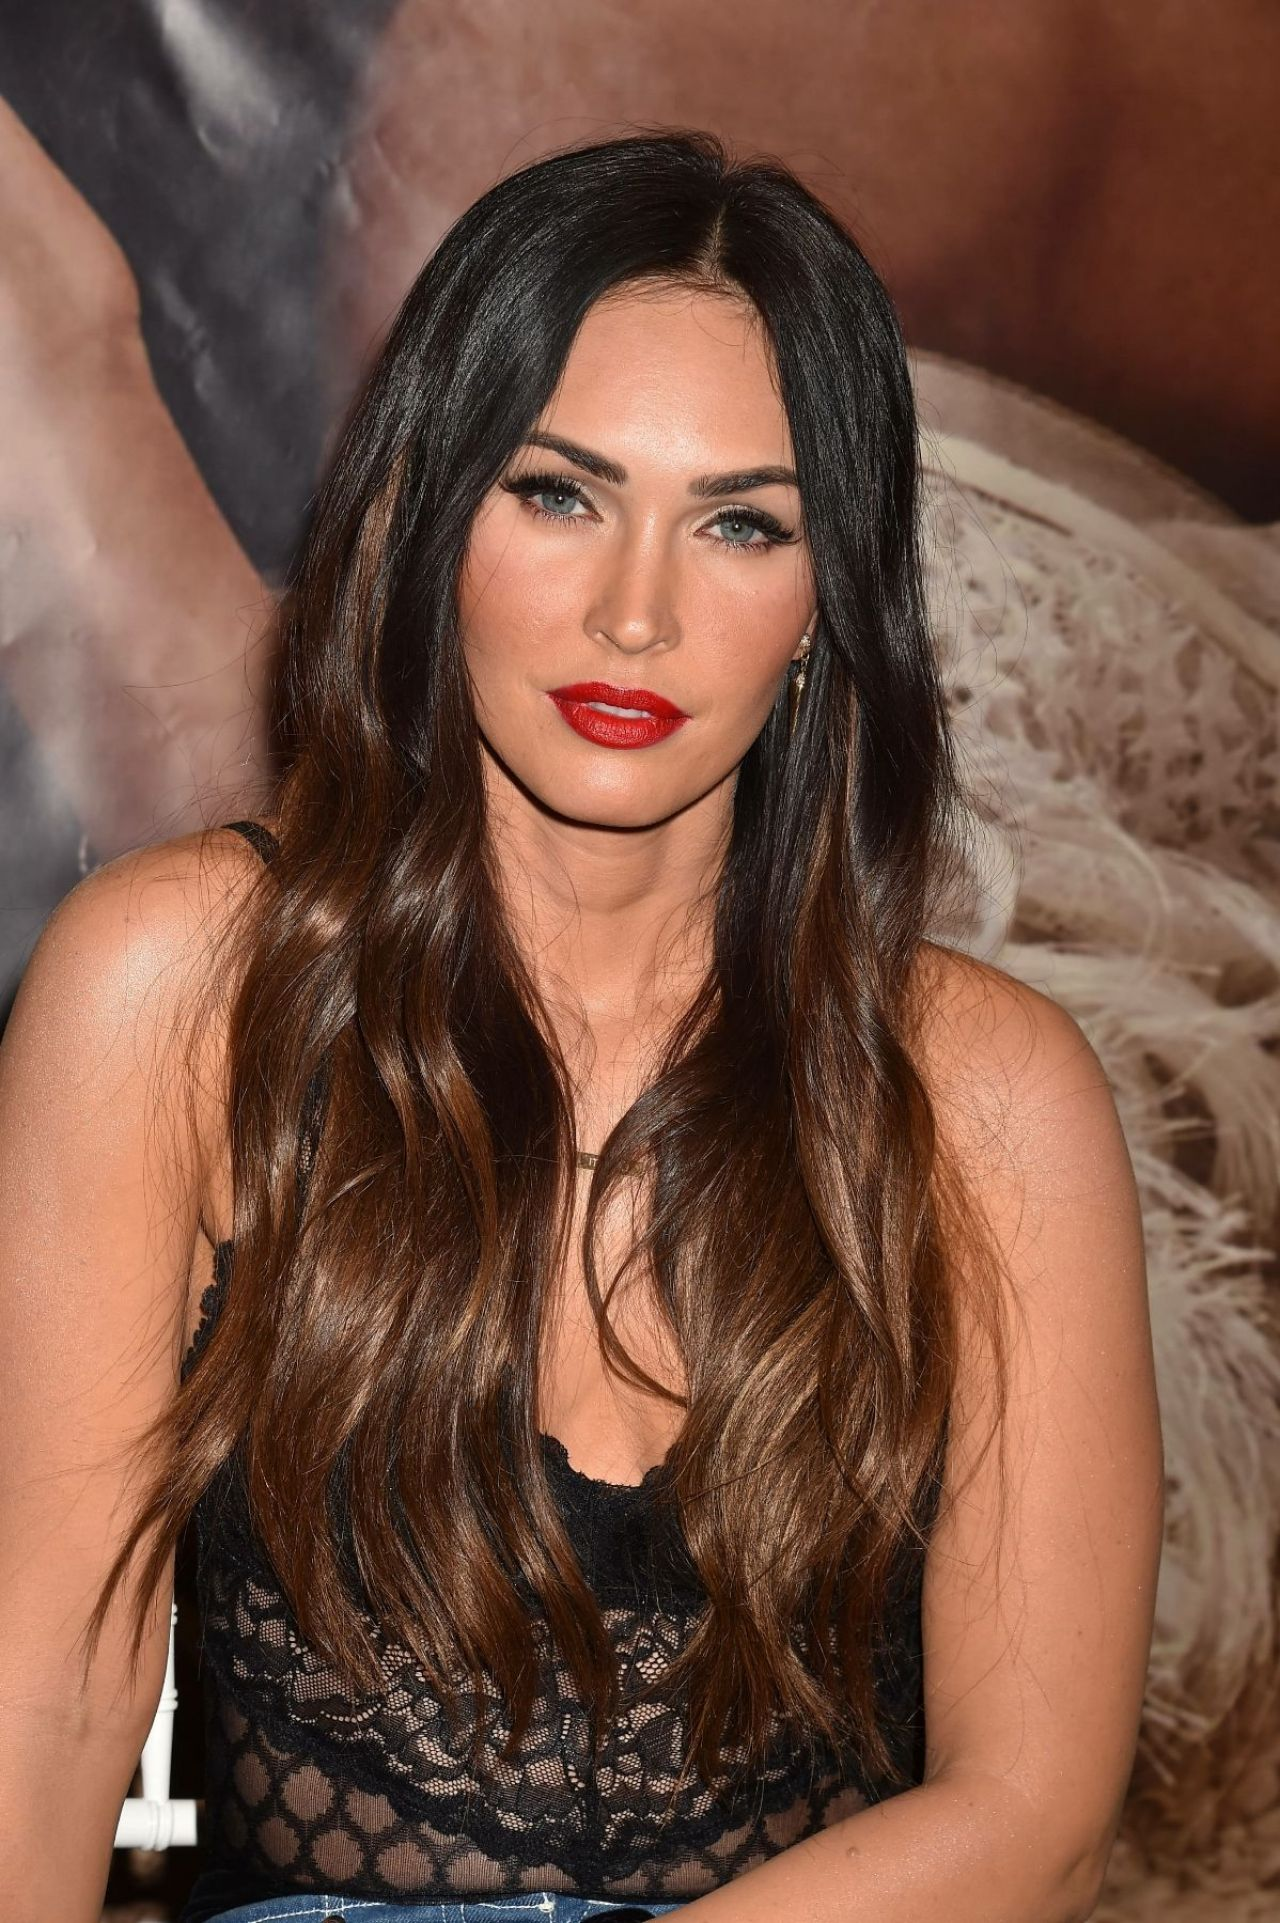 Megan Fox Latest Photos - CelebMafia Megan Fox